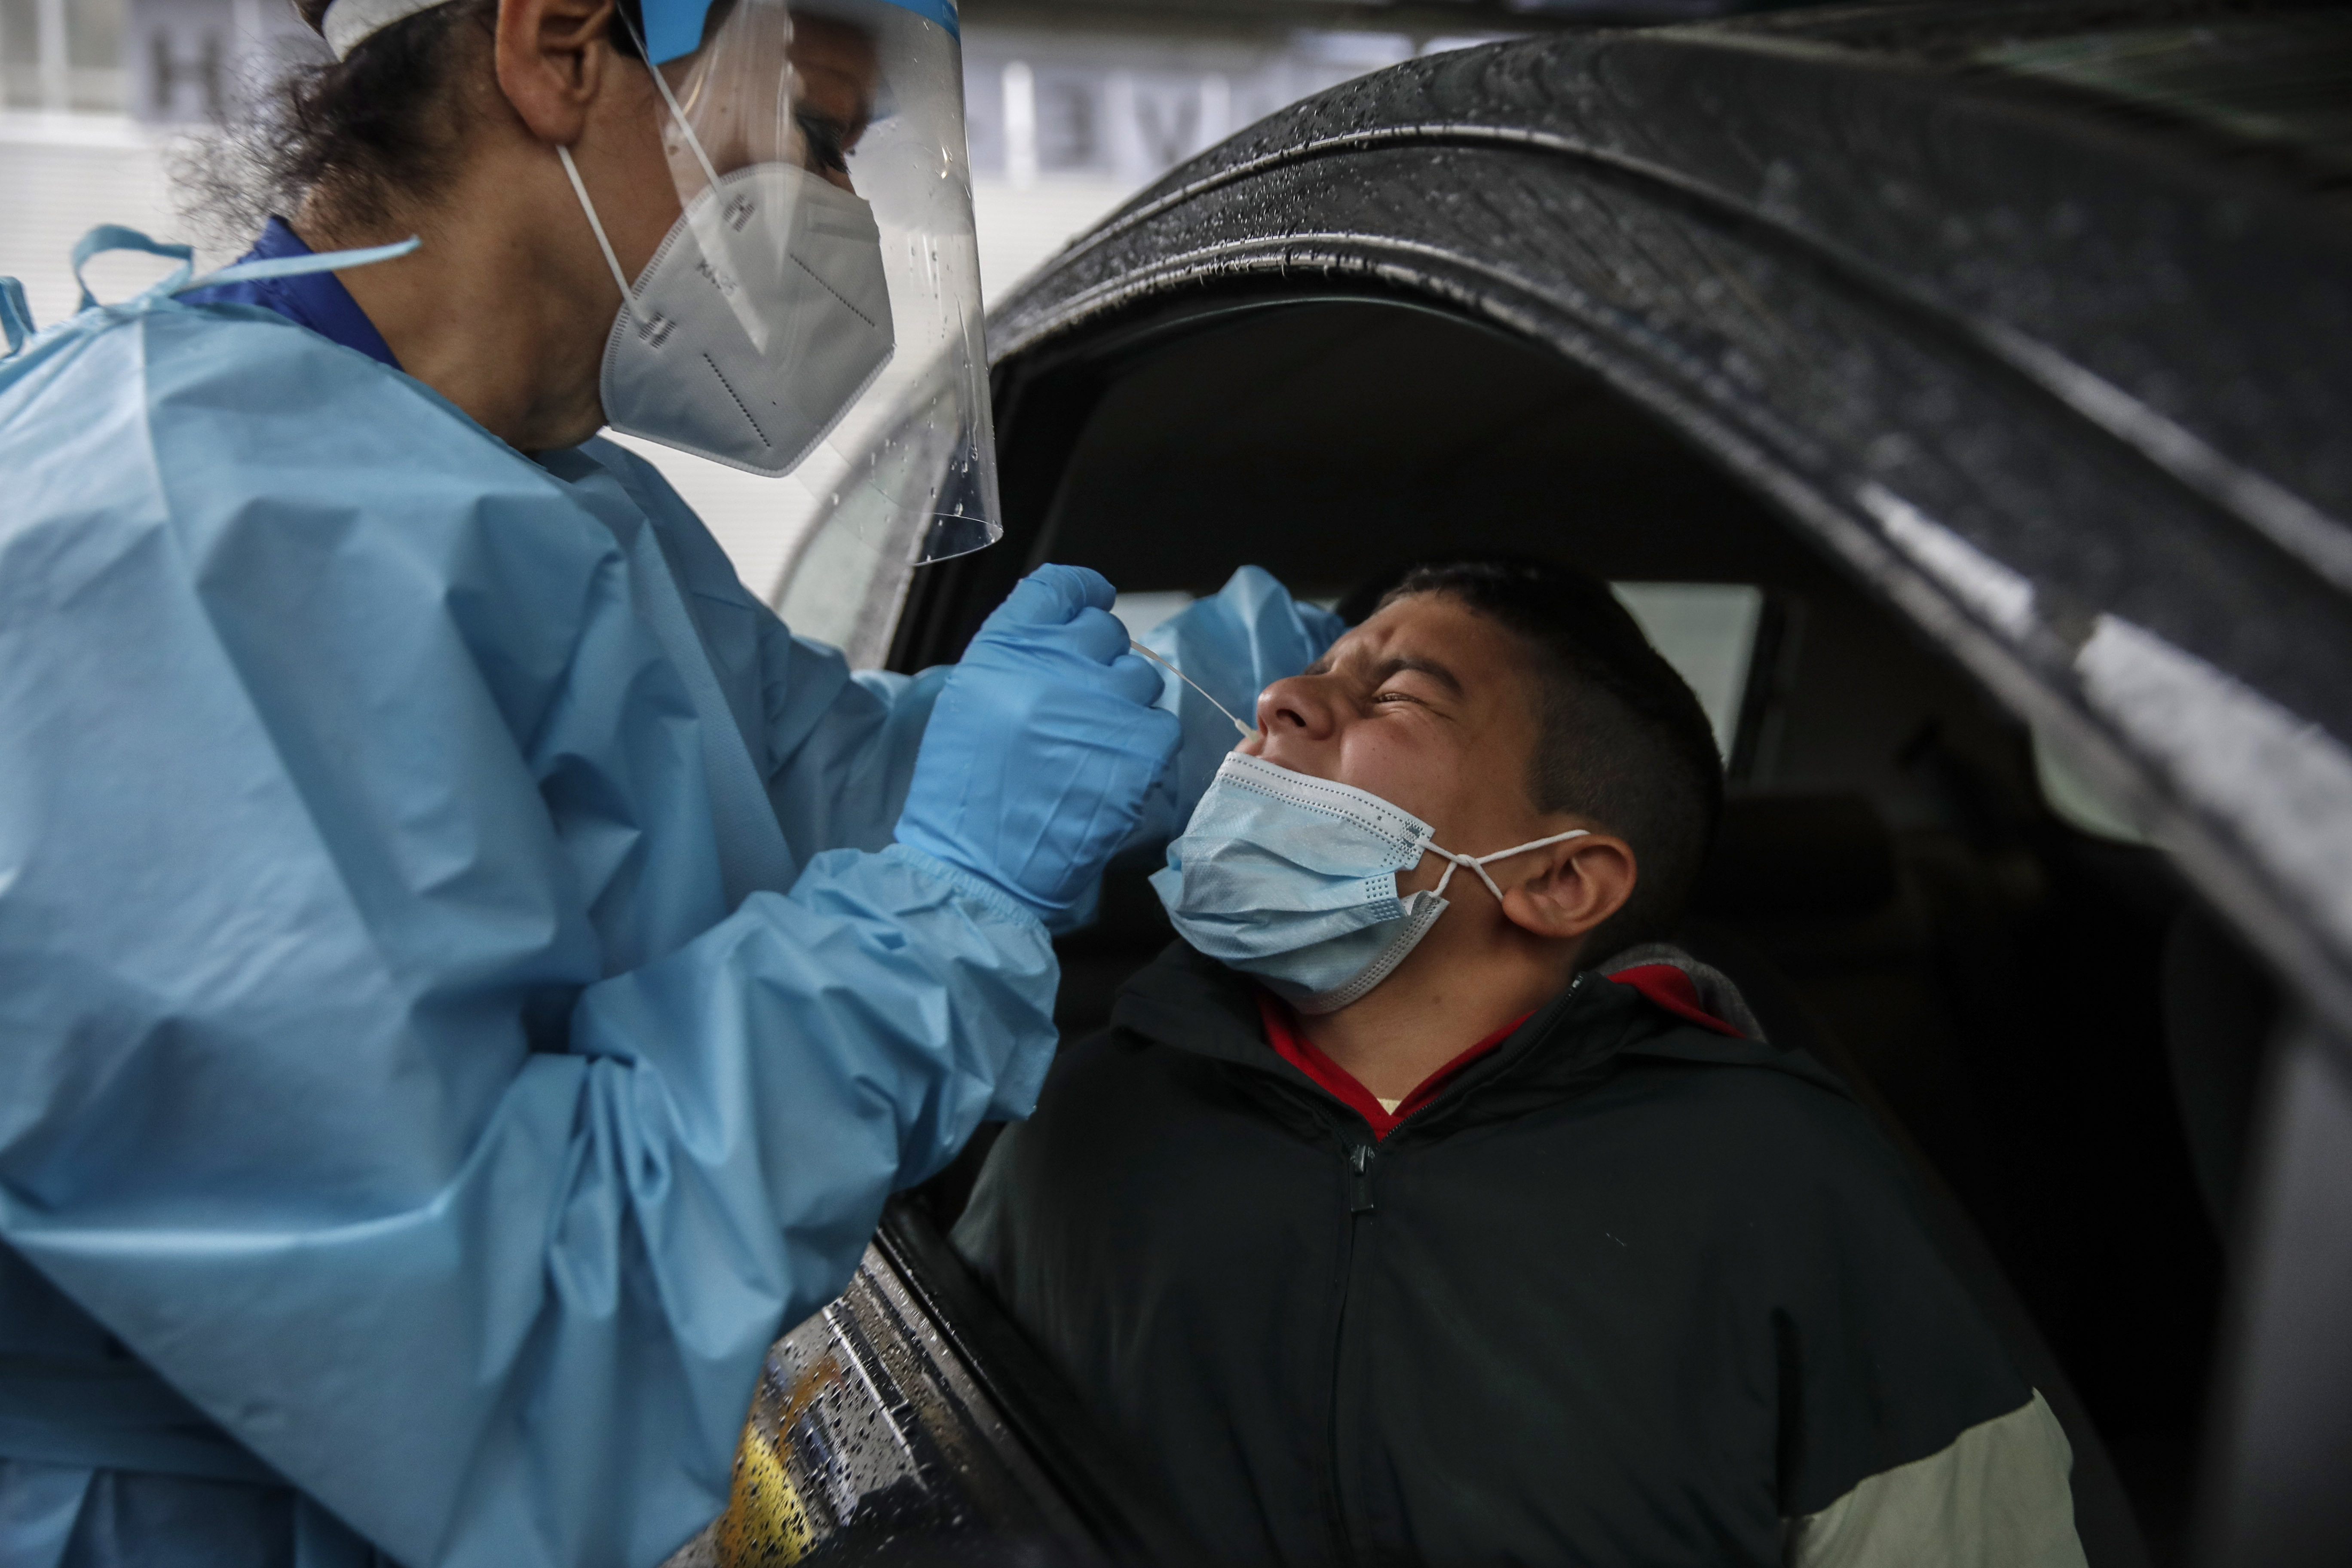 Medical staff takes a swabs as she tests a boy for COVID-19 at a drive-through at the San Paolo hospital, in Milan, Italy, Thursday, Oct. 15, 2020. Coronavirus infections are surging again in the region of northern Italy where the pandemic first took hold in Europe, renewing pressure on hospitals and health care workers. (AP Photo/Luca Bruno)